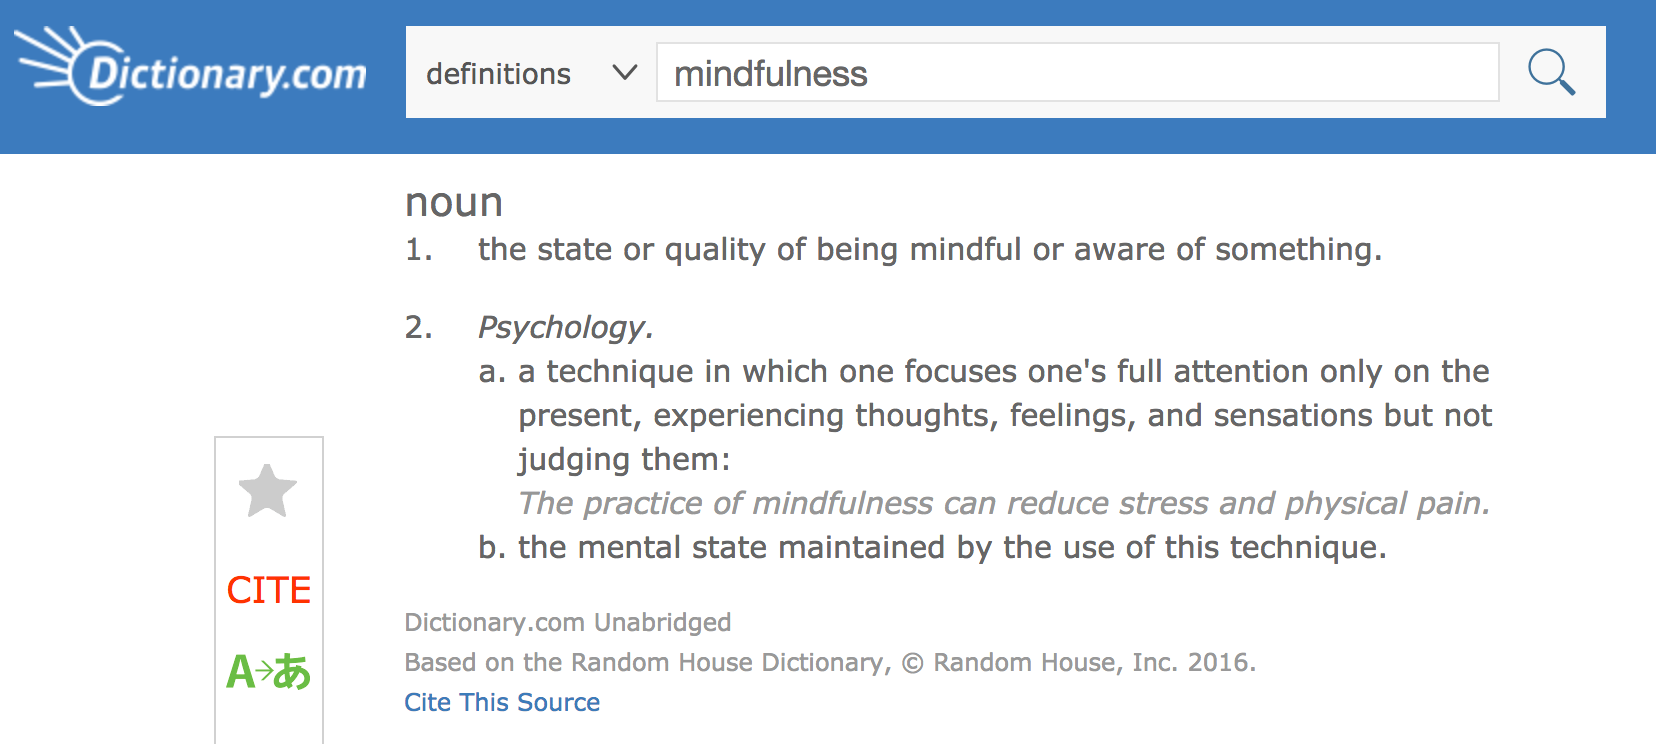 mindfulness_on_dictionary.com